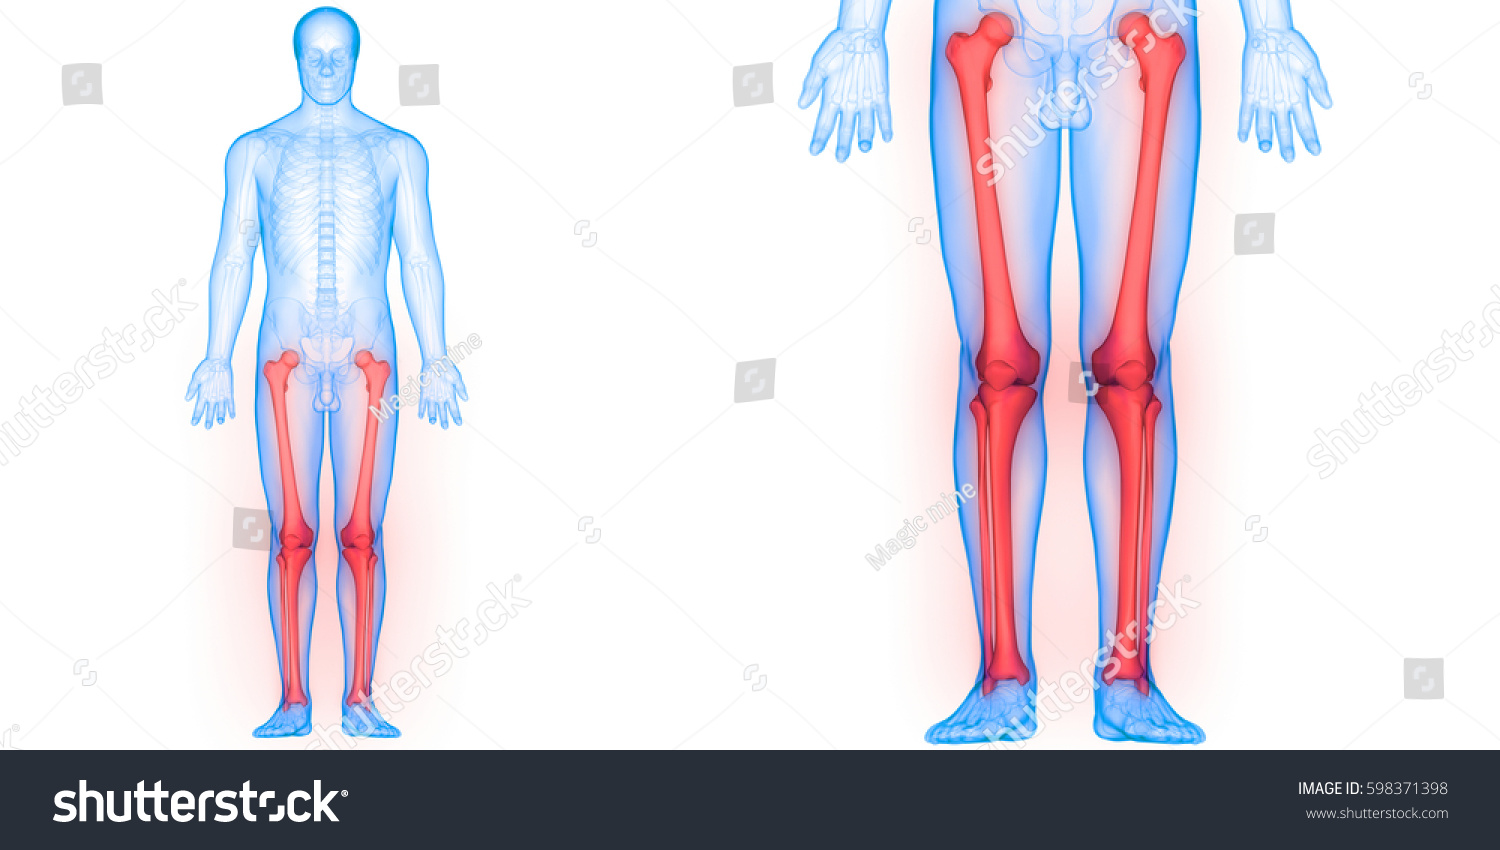 Human Body Bone Joint Pains Anatomy Stock Illustration 598371398 ...